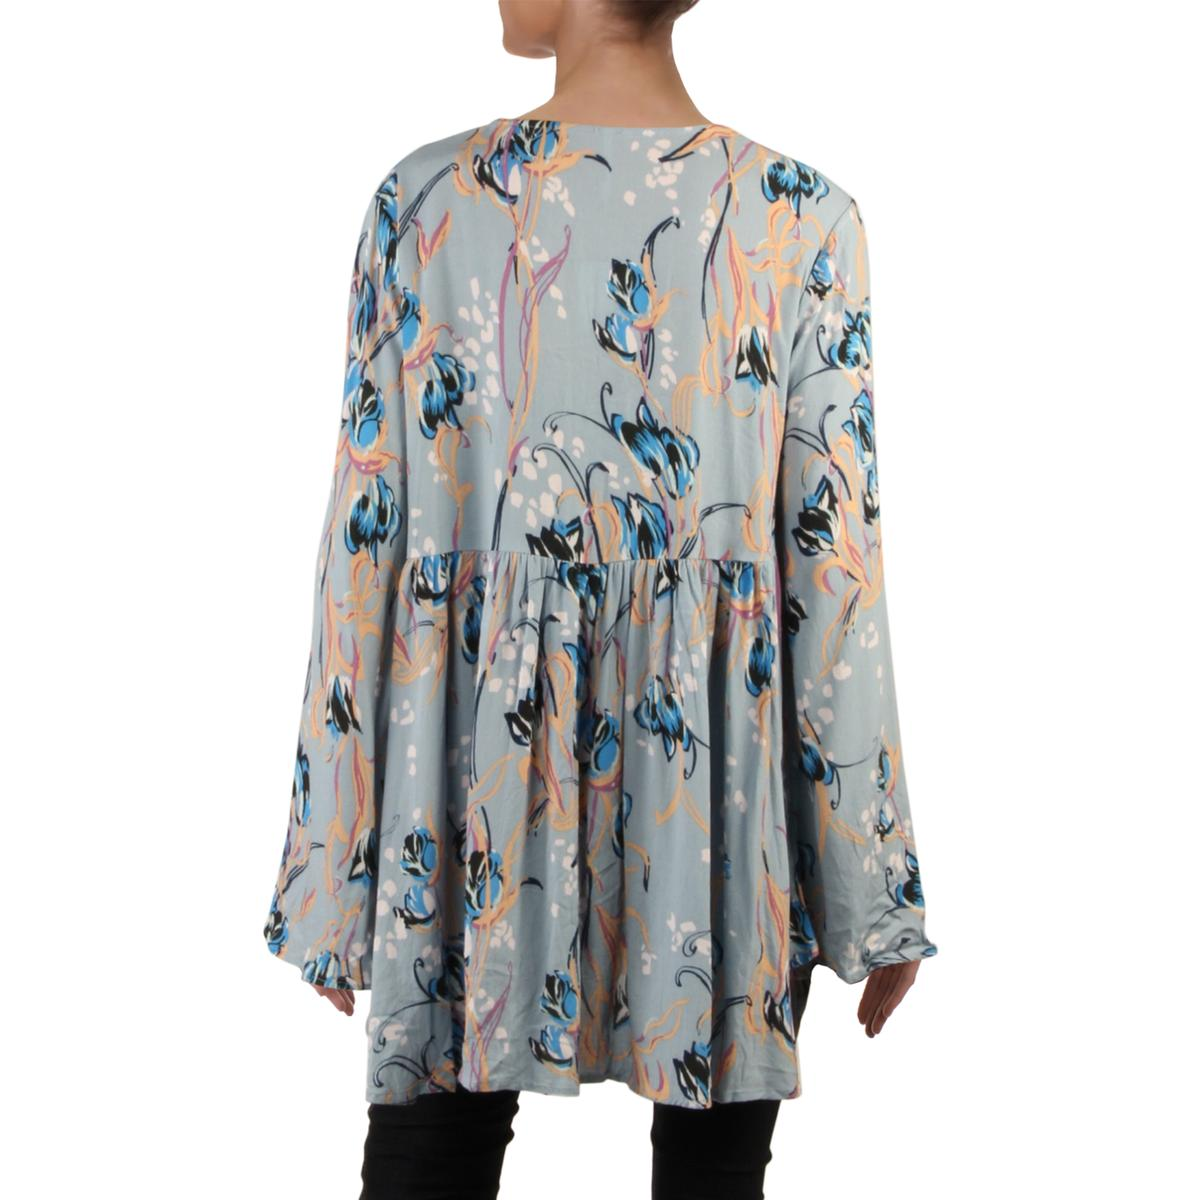 Free People Womens Bella Bell Sleeve V-Neck Casual Tunic Top Shirt BHFO 2373